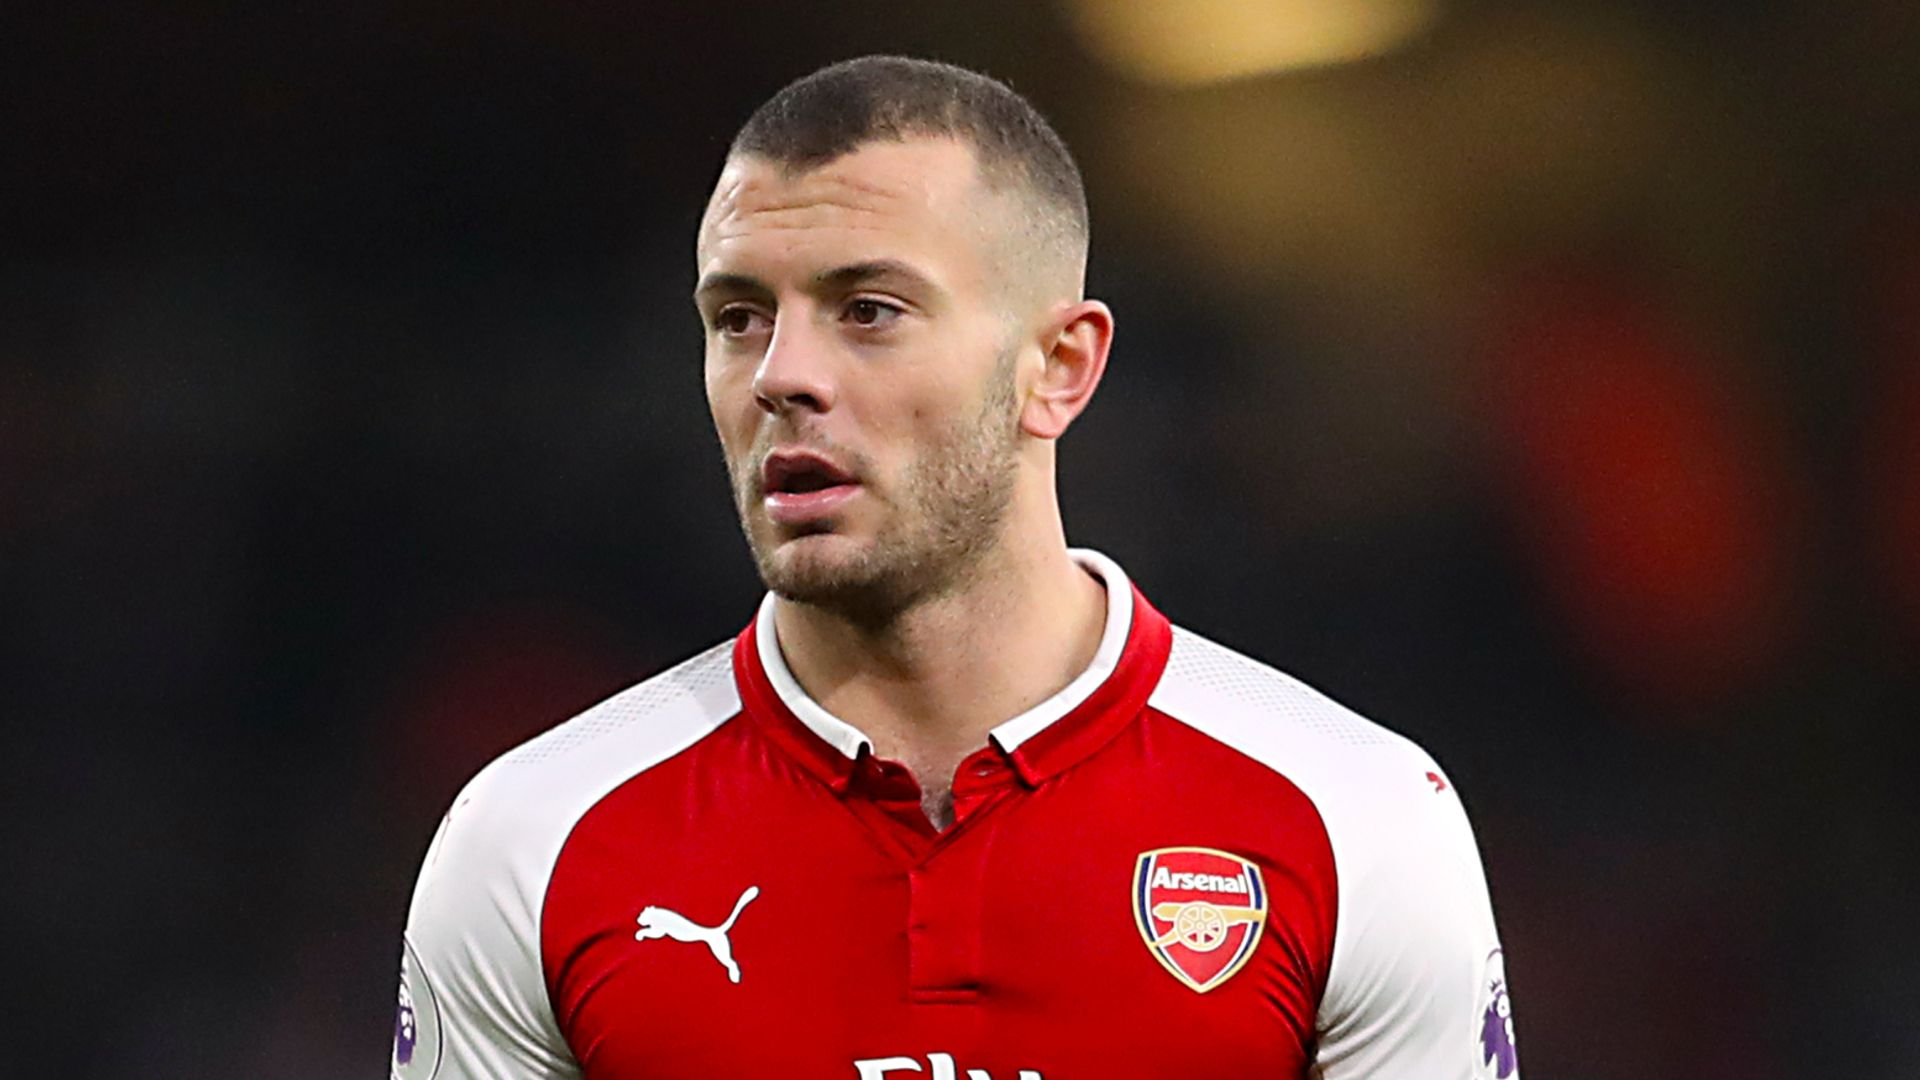 Wilshere: Playing, not coaching, still my focus